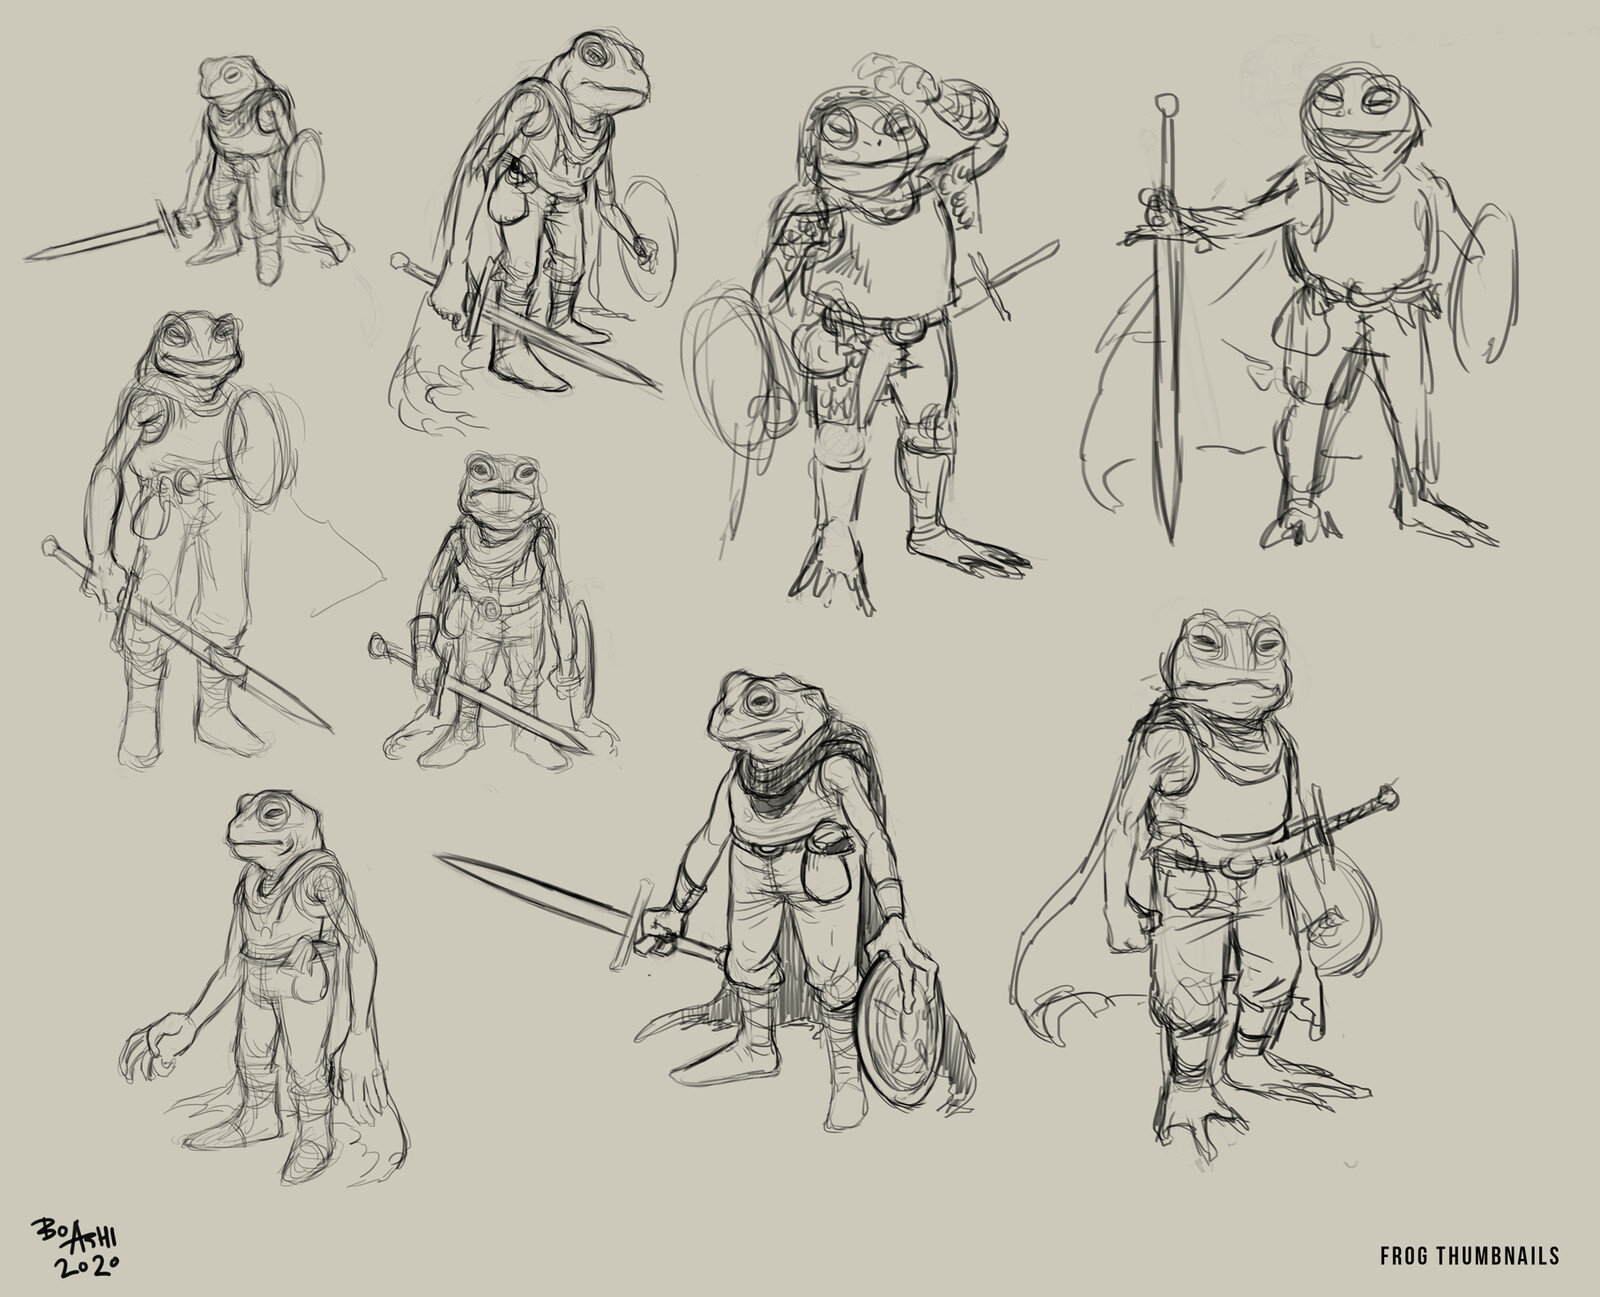 Thumbnails and sketches